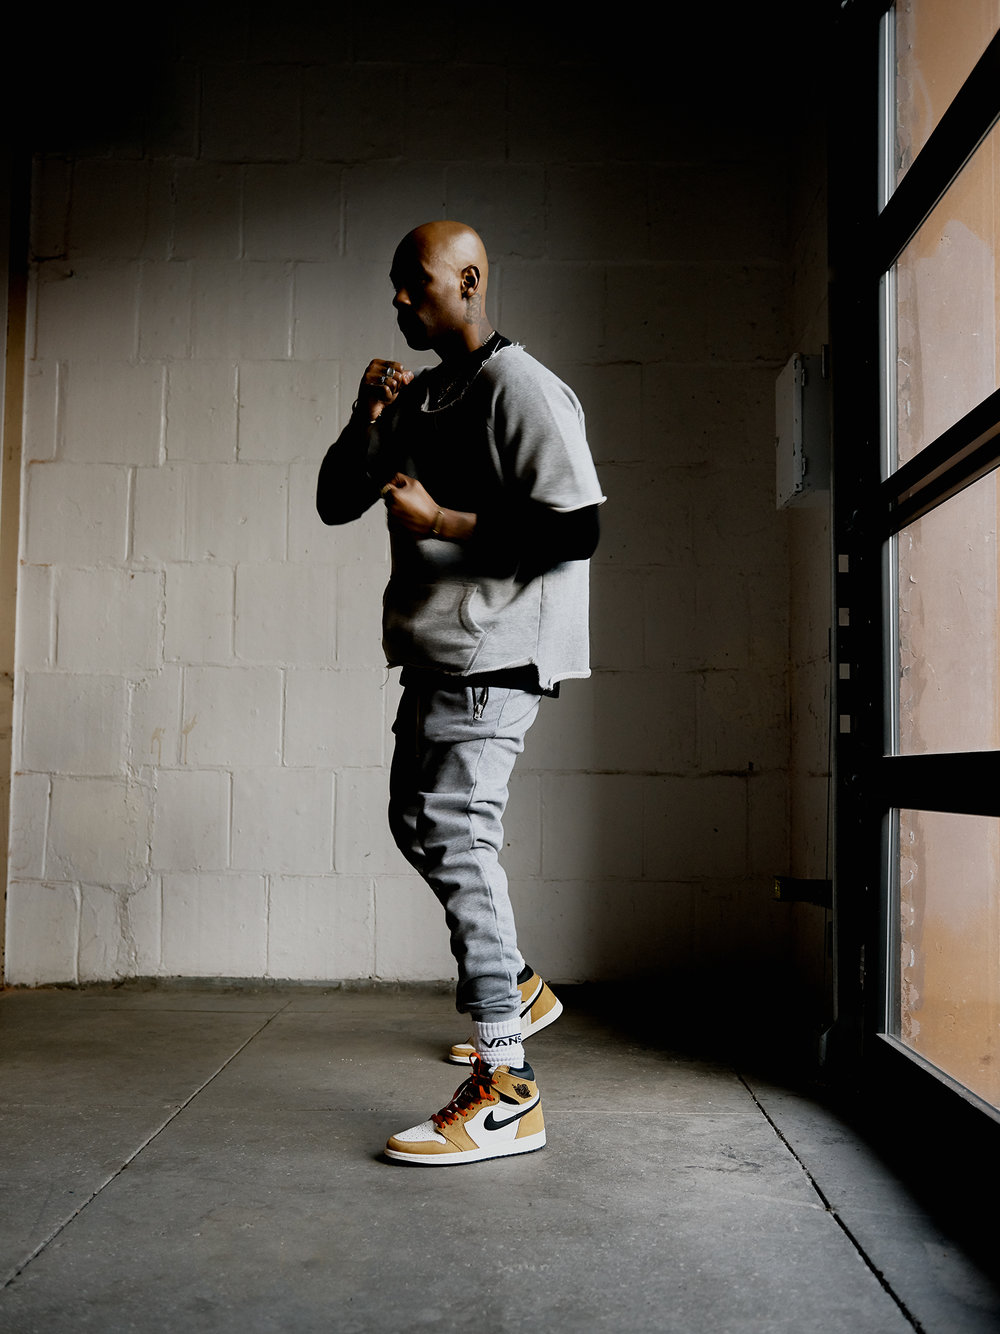 Boxing Trainer and Personal stylist Gregory Coachman